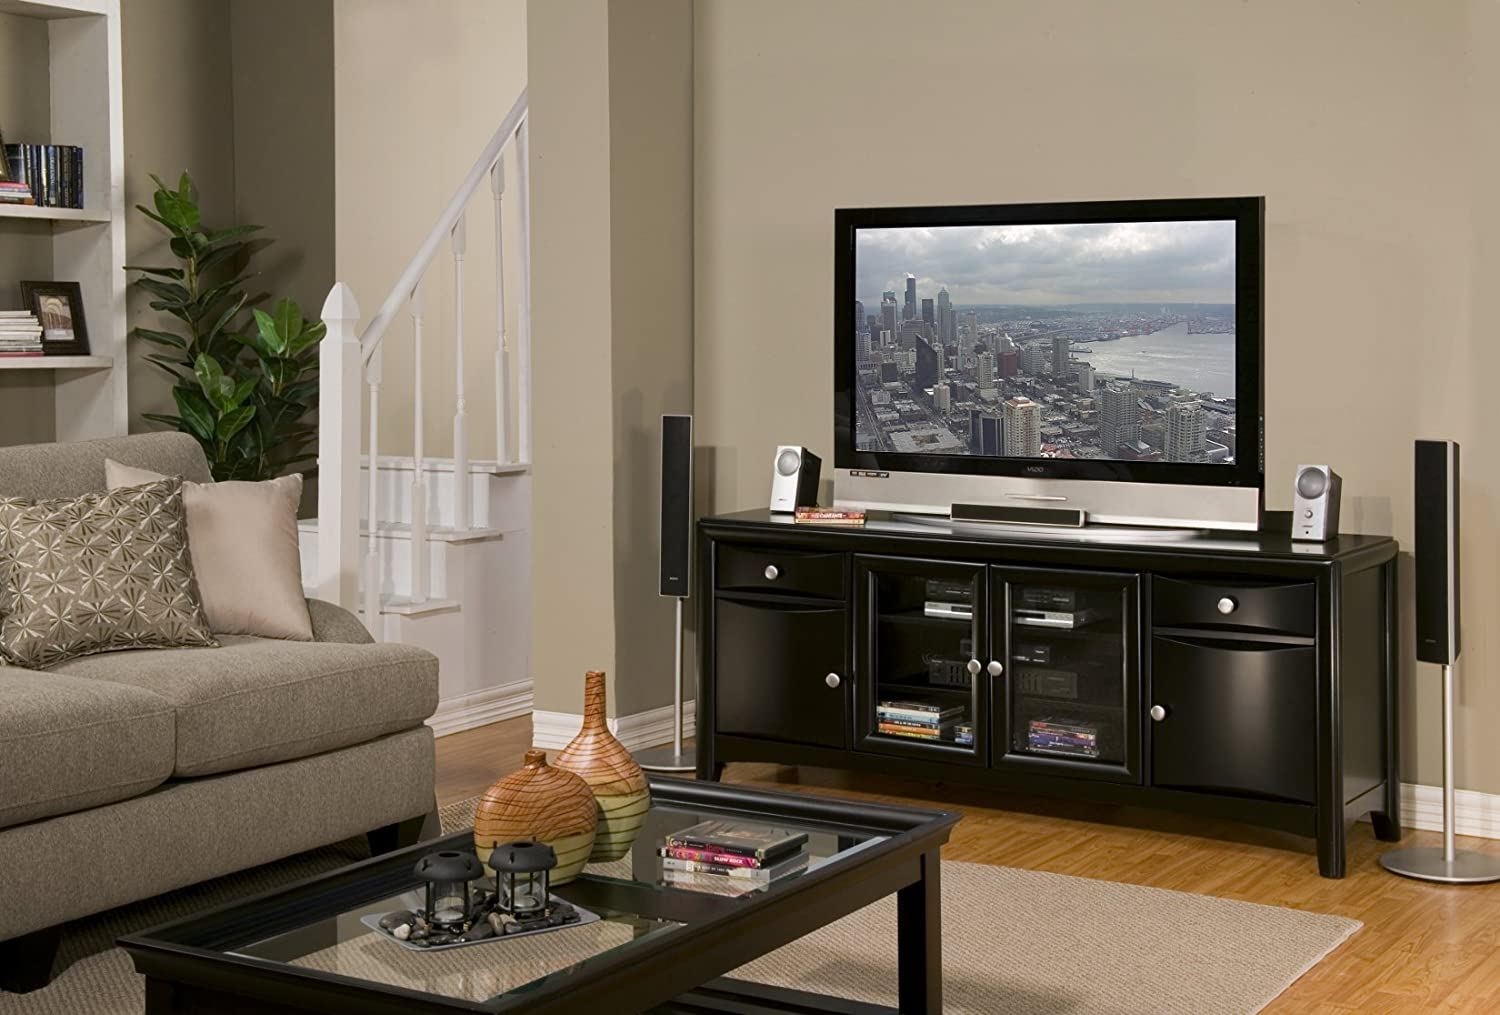 Amazon com  Laguna 72  TV Stand  Electronics. Alpine Living Center Phone Number. Home Design Ideas